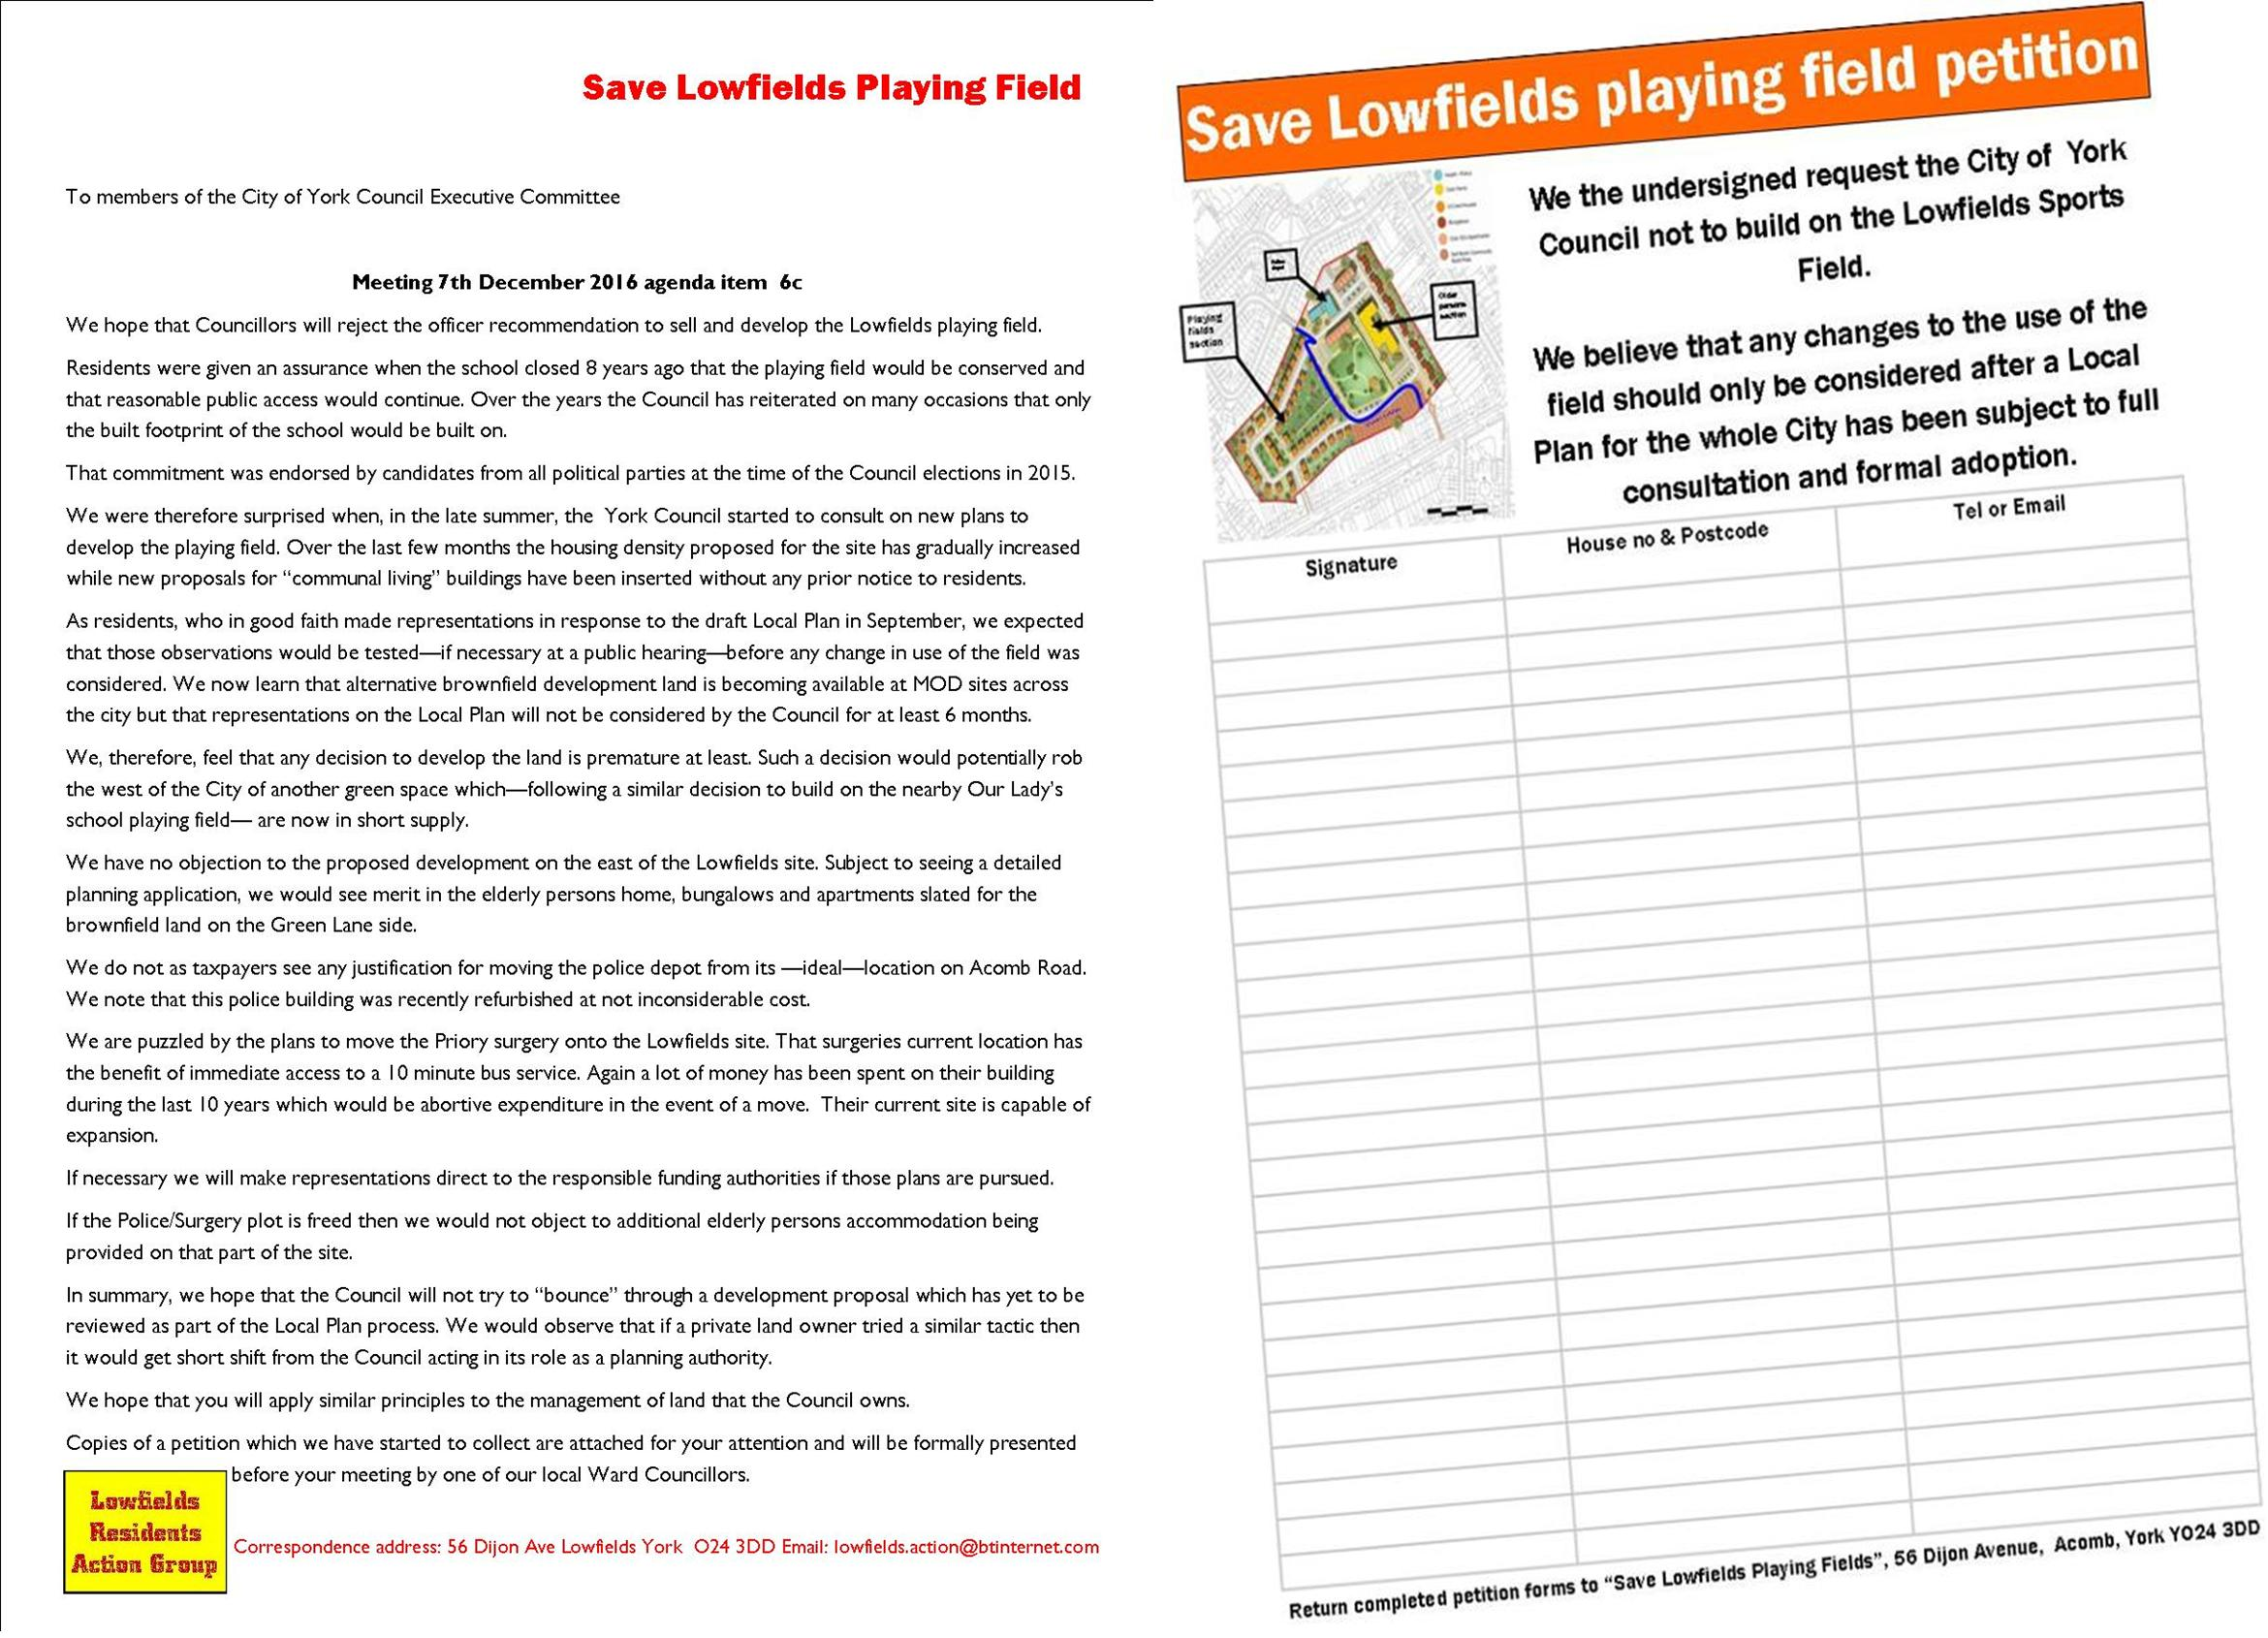 Residents seeking to conserve the Lowfields playing field were rebuffed by the Council leadership at a meeting on Wednesday. However the battle goes on. Other parts of the City are awaking to the possible loss of other playing fields. A meeting on 19th December will hear pleas for the playing field at the former Manor school site to be brought back into public use while a Parish Council is seeking to make the fields at Osbaldwick school an asset of community value.